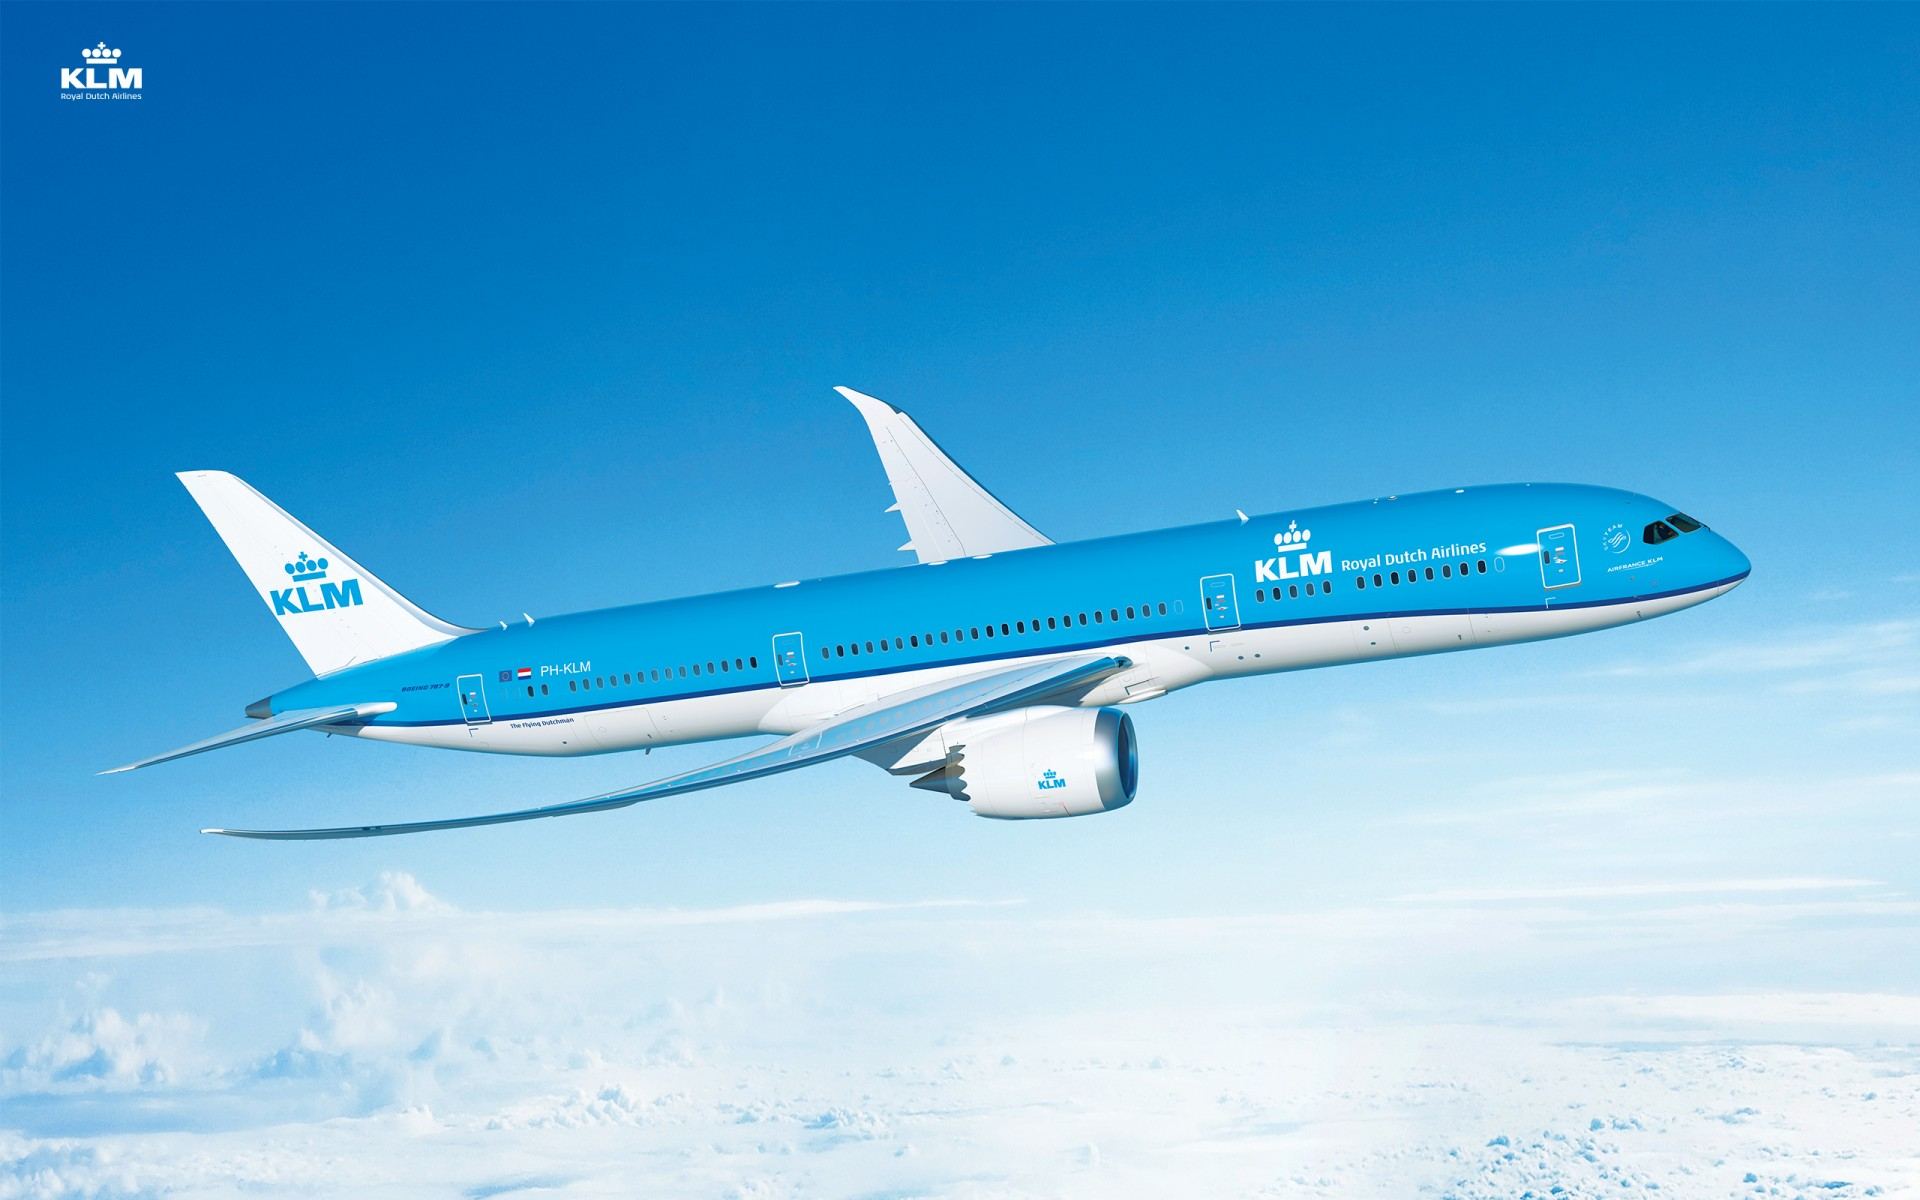 Wallpapers Klm Dreamliner